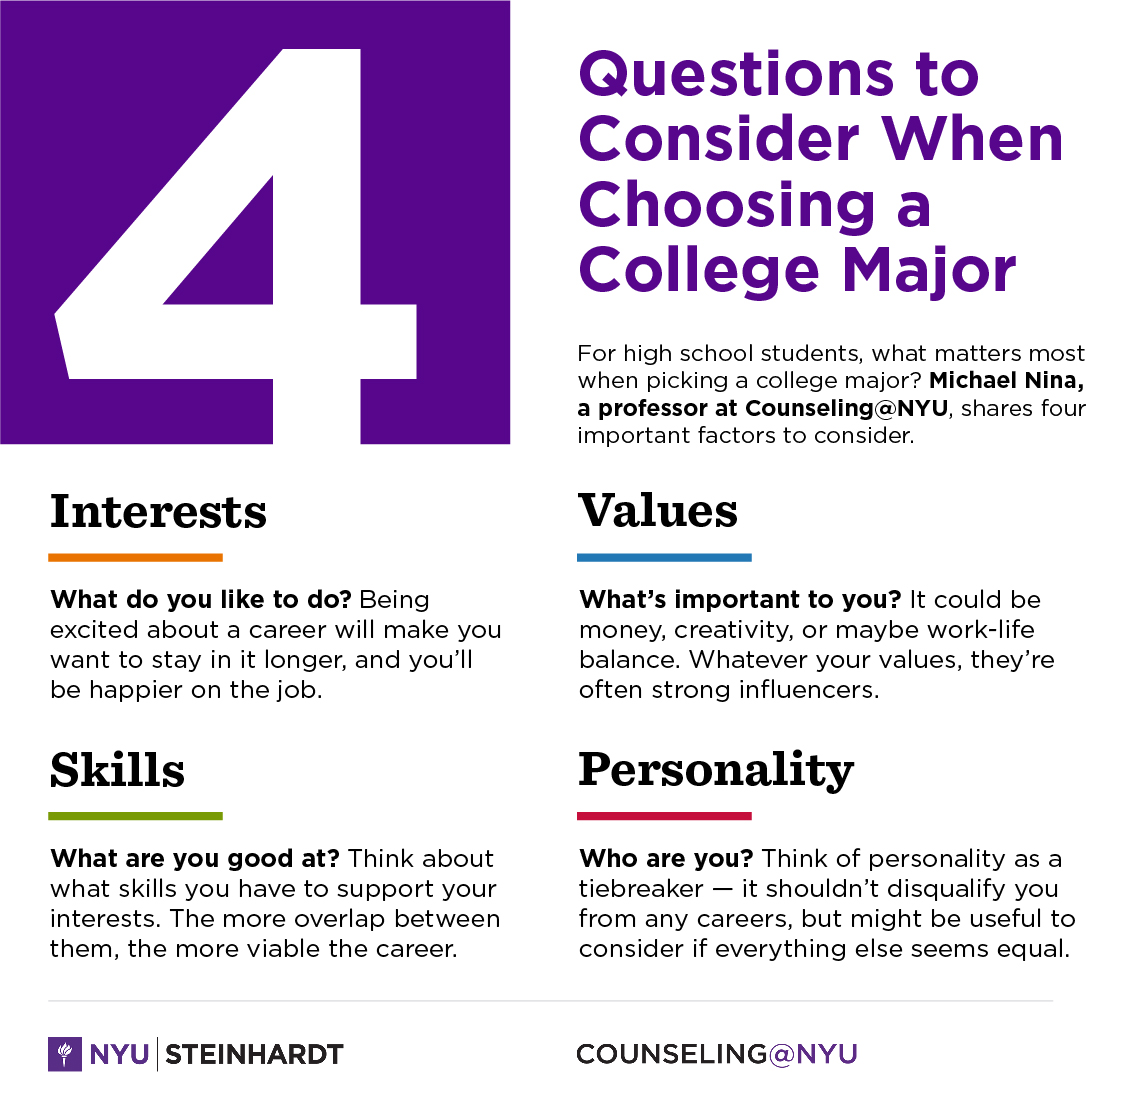 Consider your interests, values, skills and personality when choosing a college major. Link below with image description.